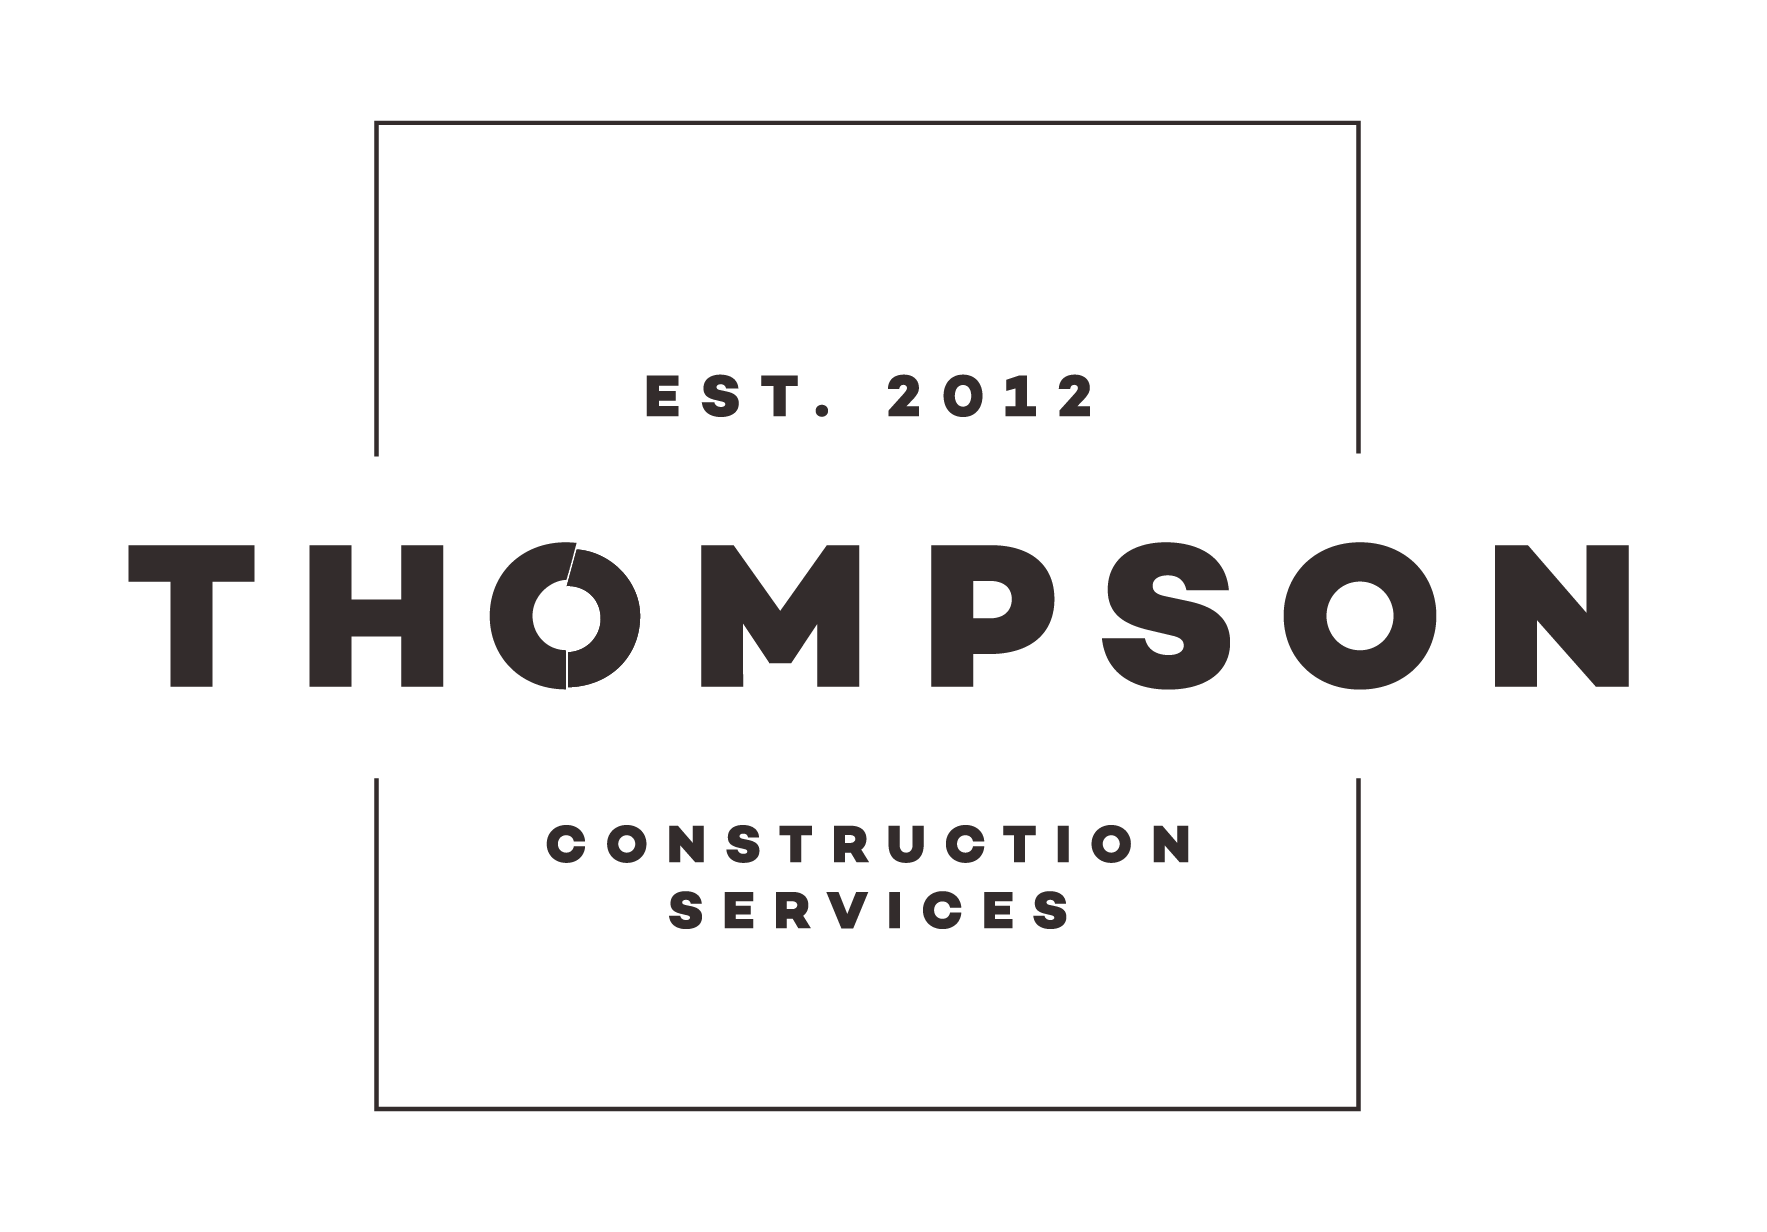 Thompson Construction Services - Established 2012